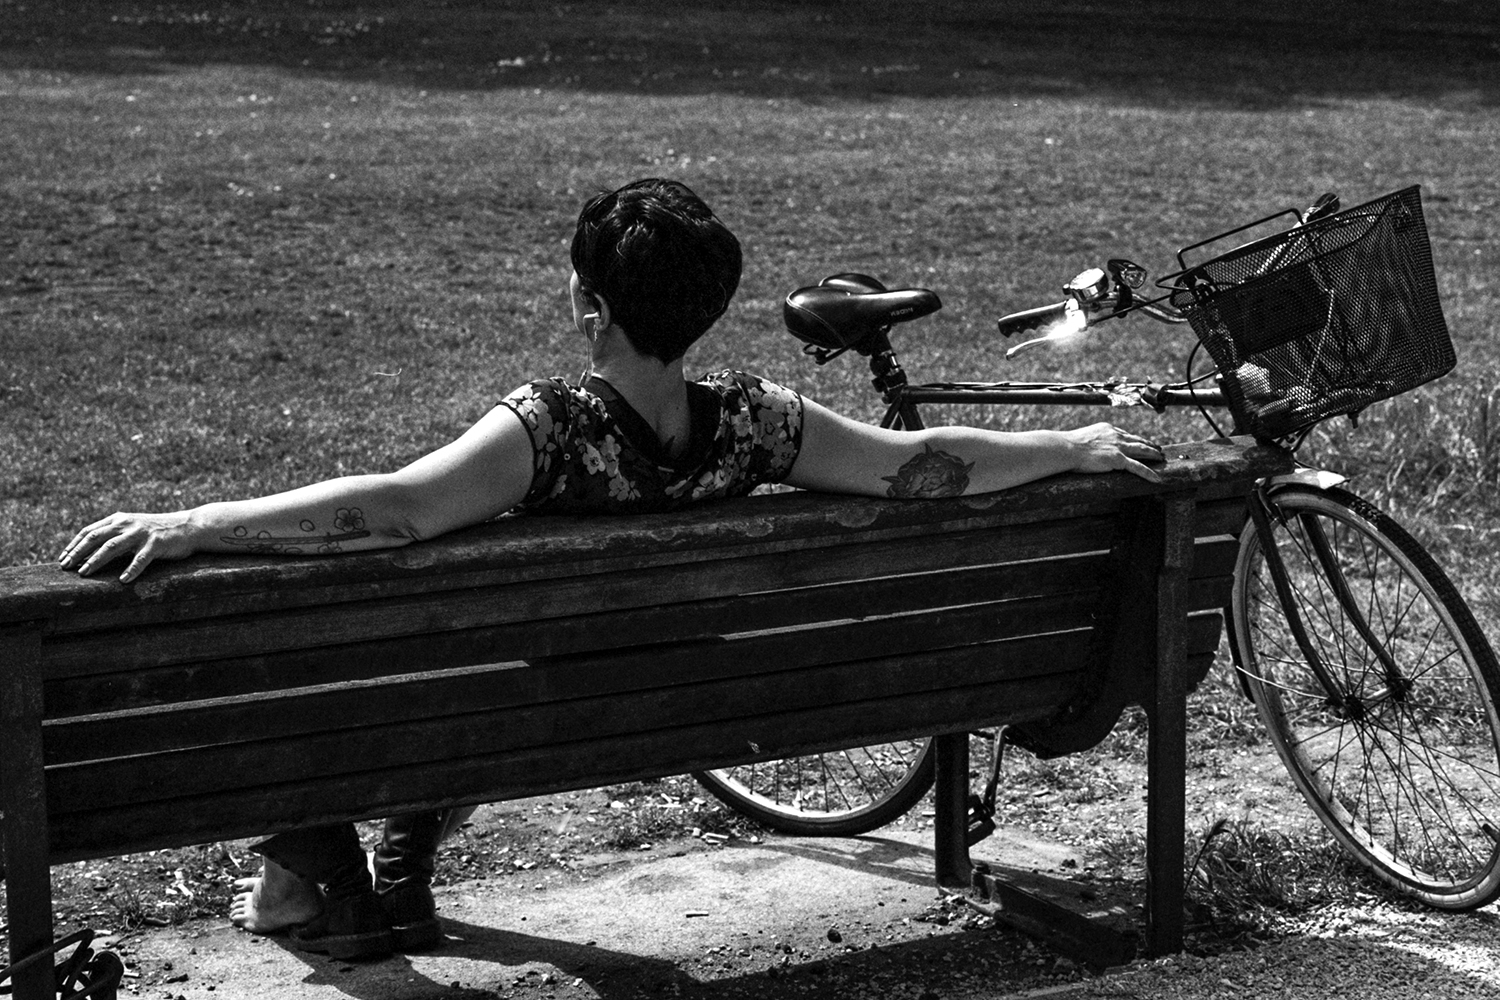 This woman was relaxing to enjoy one of the first nice days this spring. I was convinced to take the photograph because of her tattoos and seeing that she'd taken her shoes off.